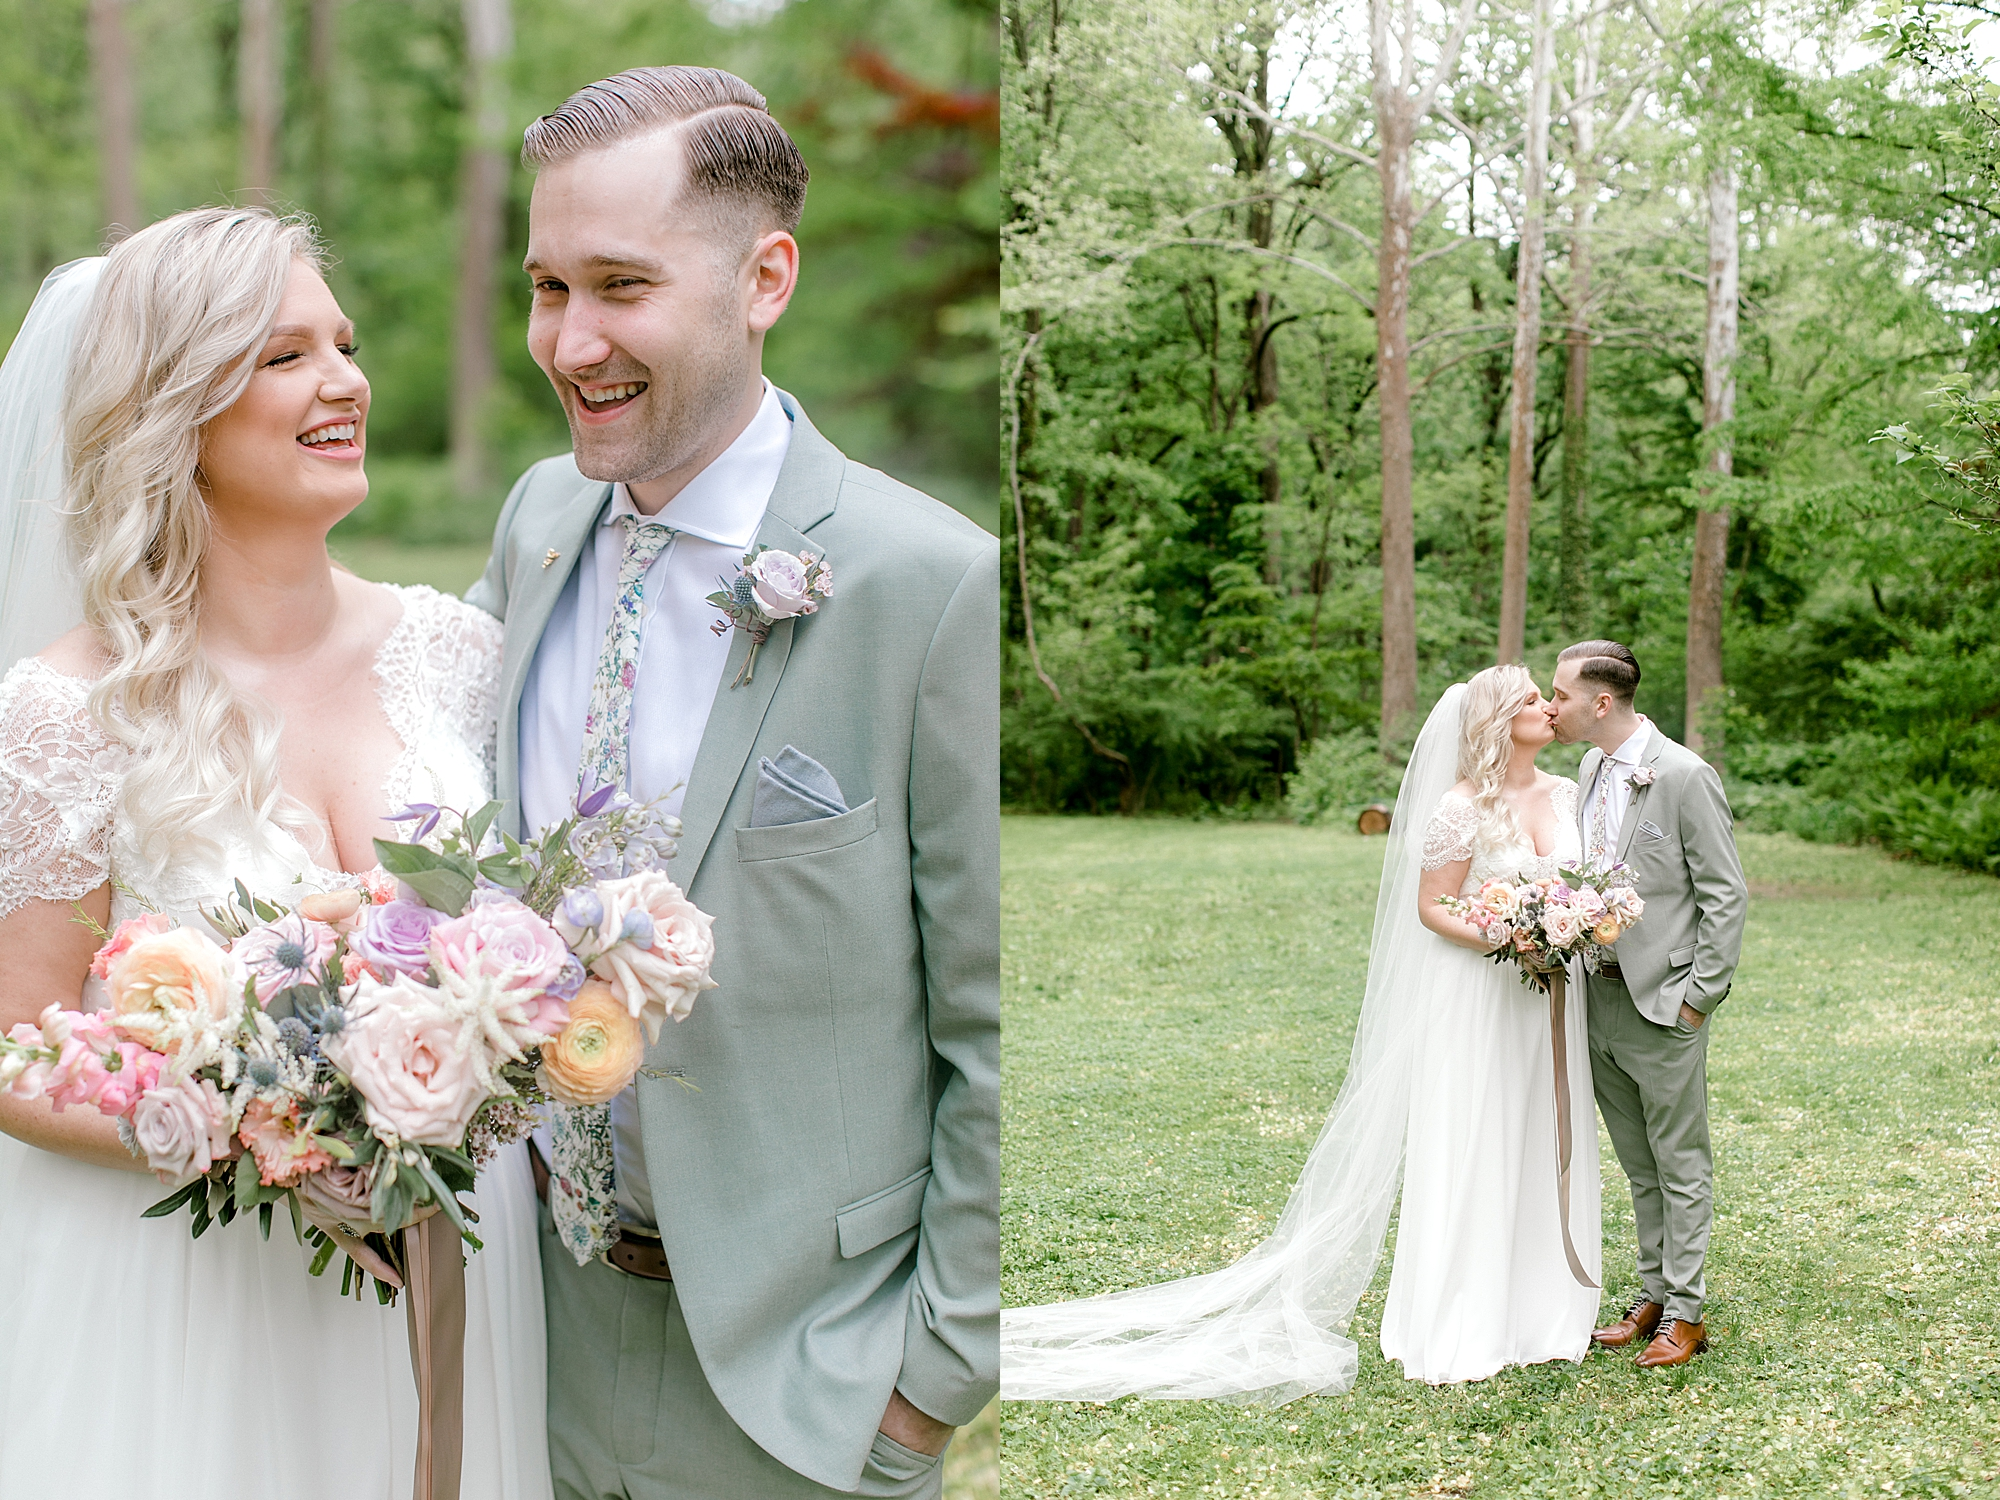 Intimate and Sweet Estate Wedding Photography by Magdalena Studios 0023